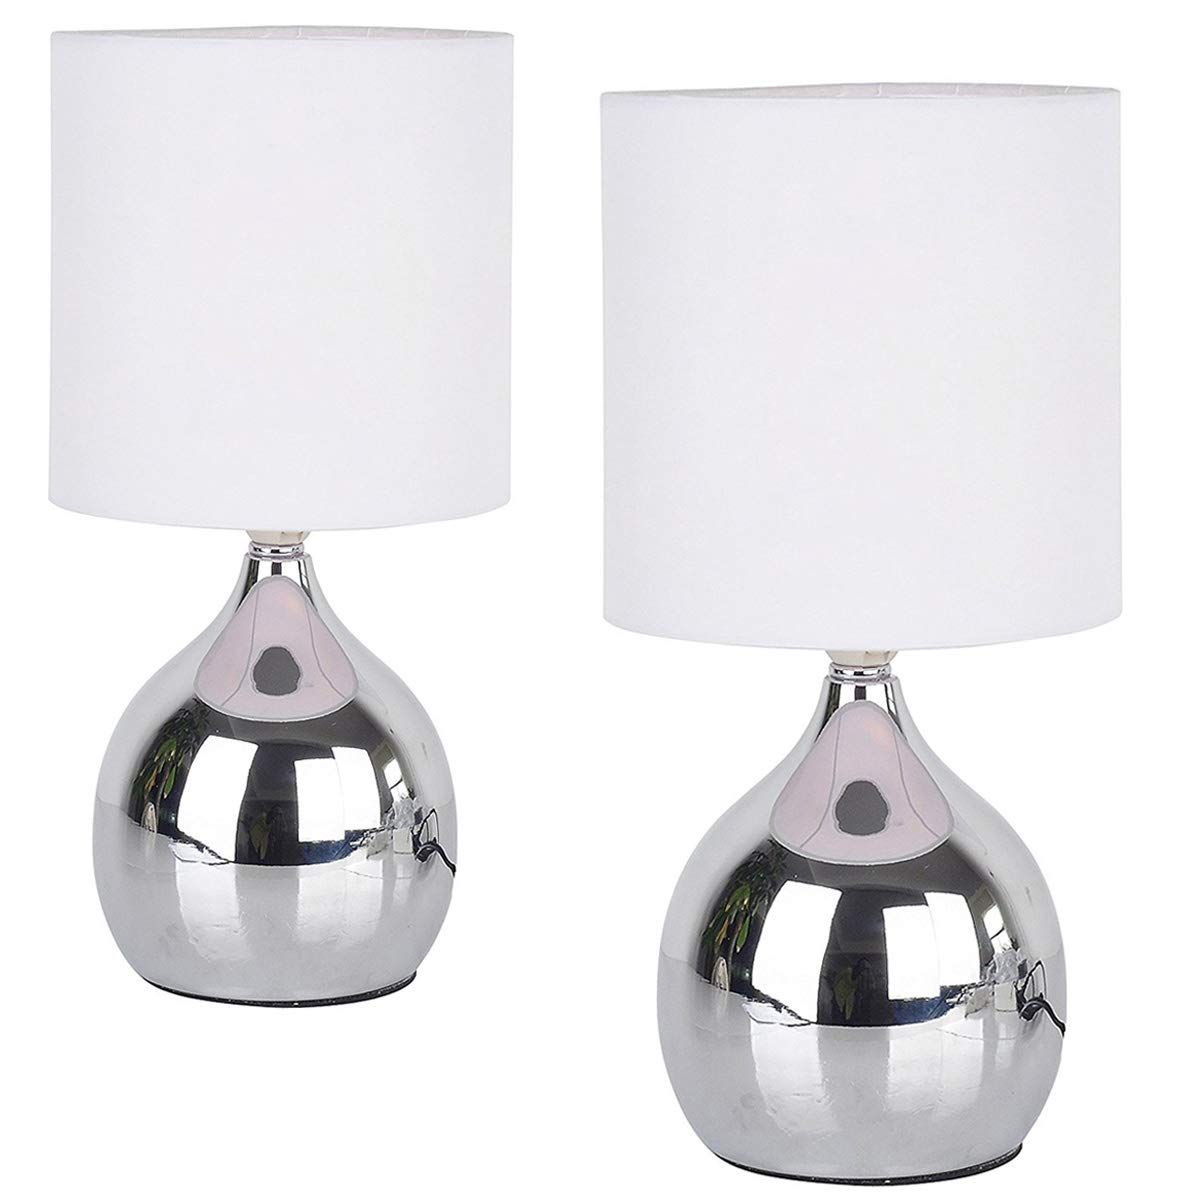 2 Pack Touch Lamps 4 Stage White Chrome Mini Small Table Desk Bedside Light Wide 6 inch Tall 12 inch